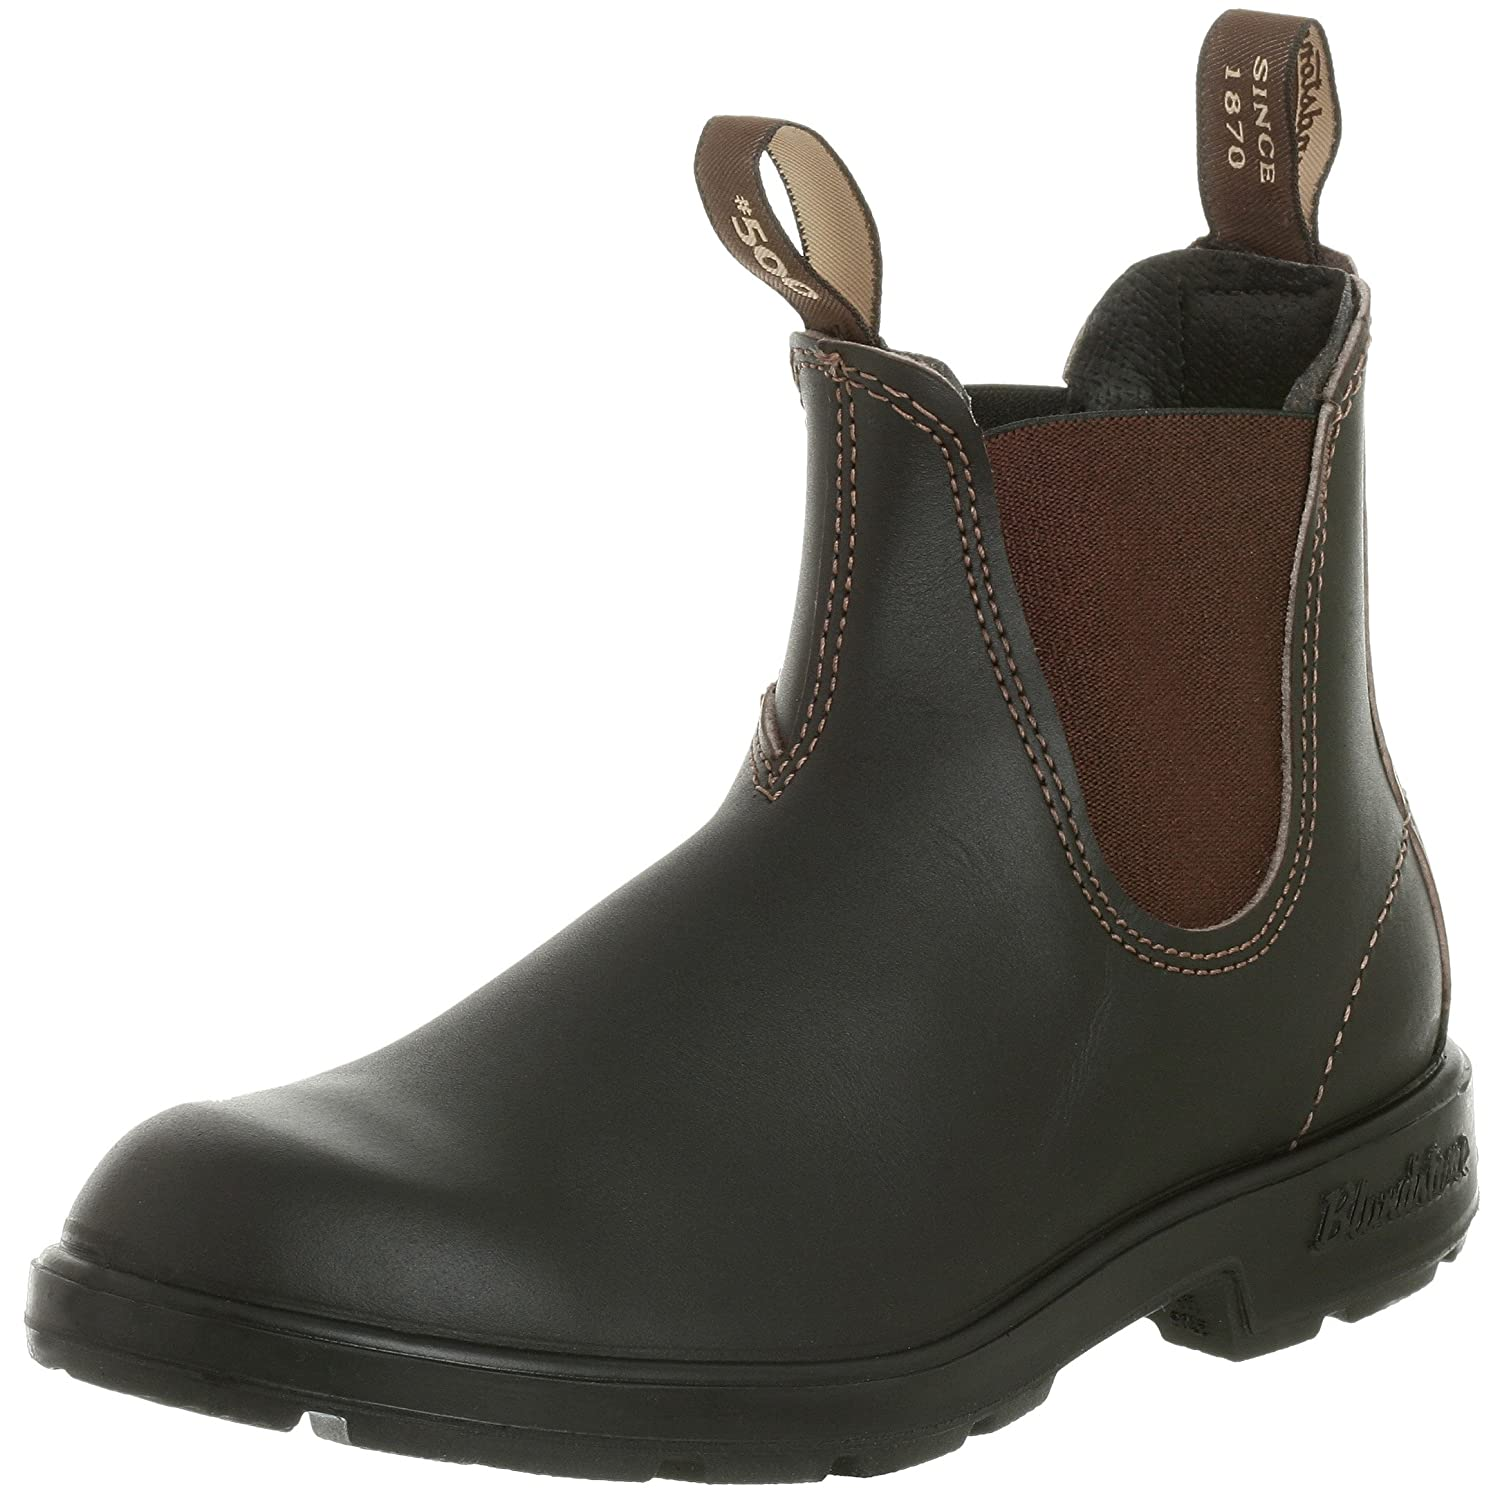 Blundstone Unisex Original 500 Series B001RXOFFA 3.5 F(M) UK|Stout Brown